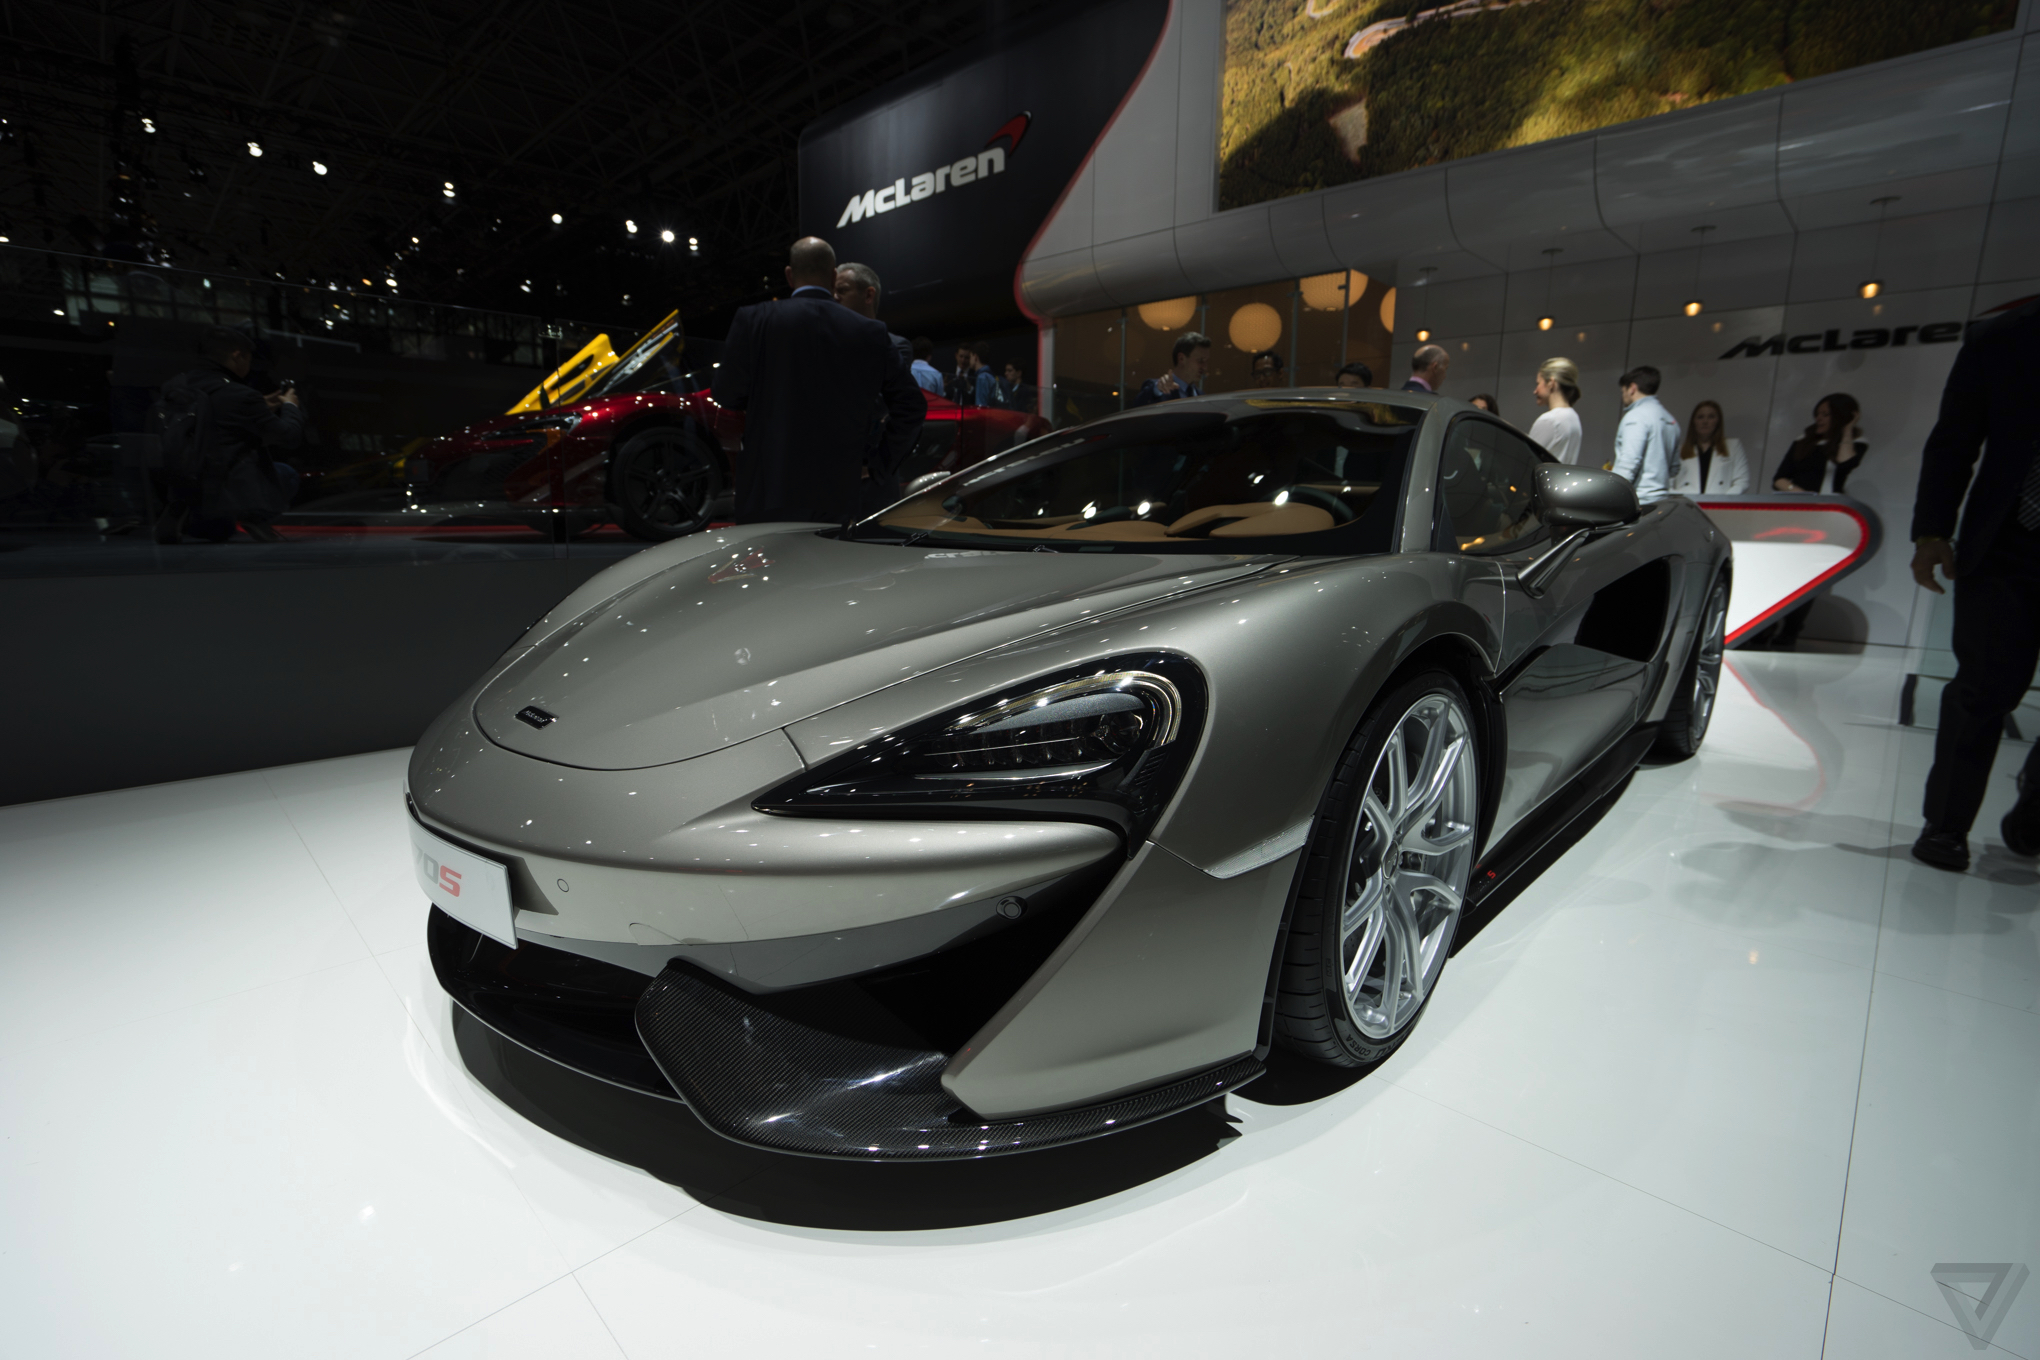 mclaren-570s-004-2040.0.0 Outstanding Lincoln Continental New York Auto Show Cars Trend